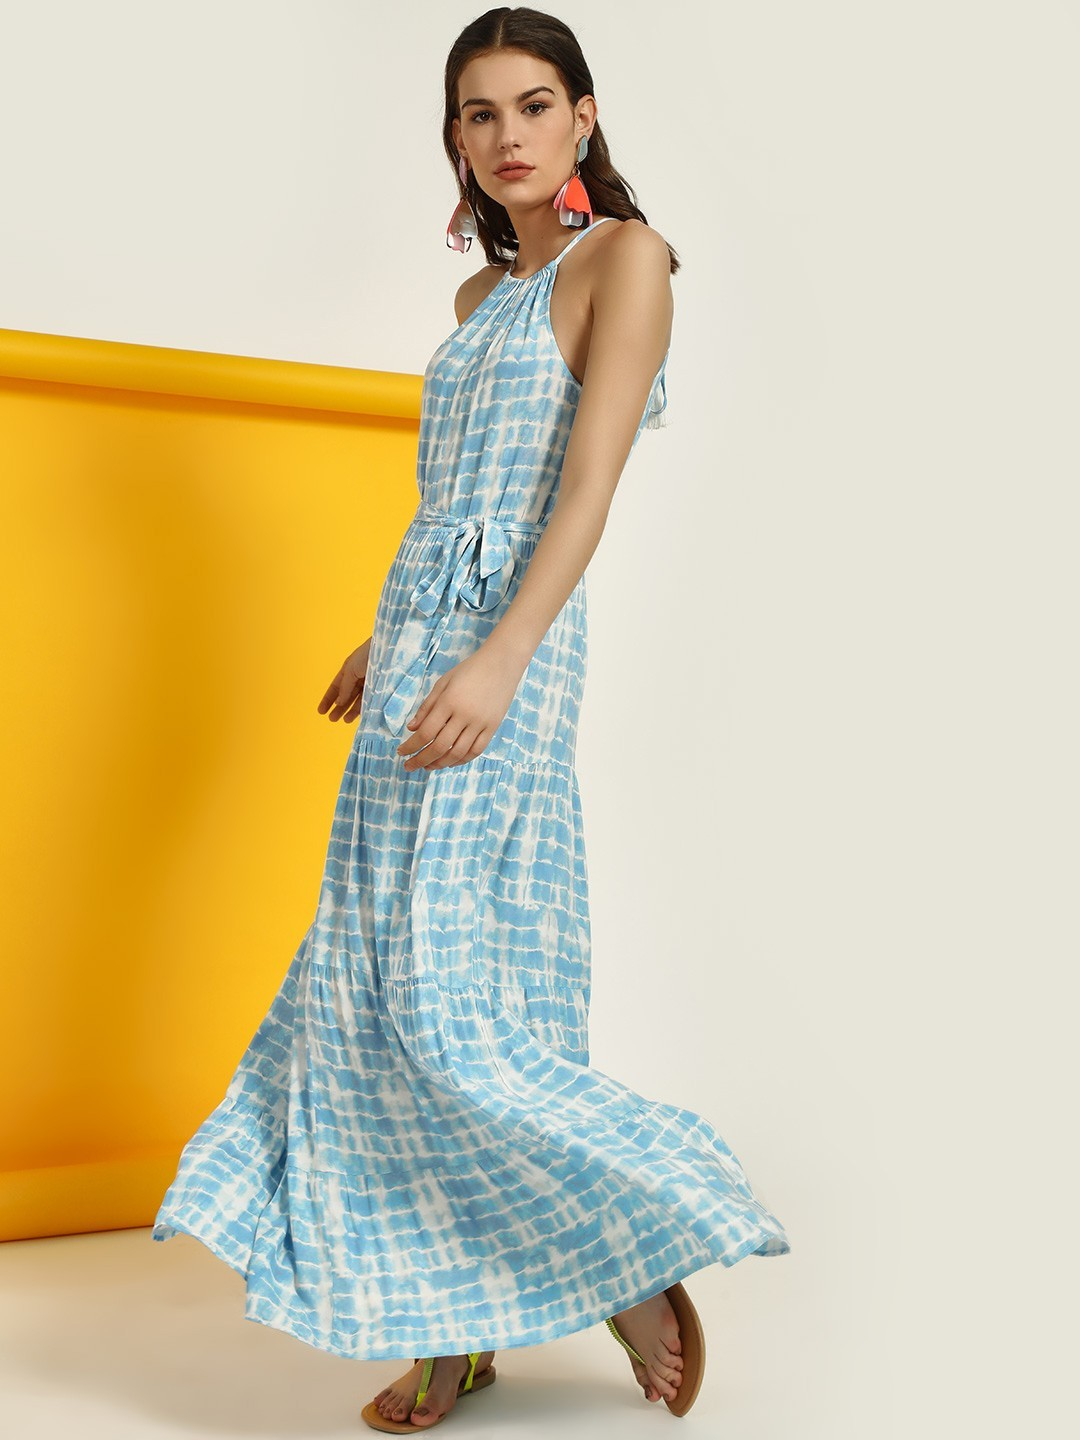 New Look BLUE PATTERN Tie Dye Halter Maxi Dress 1